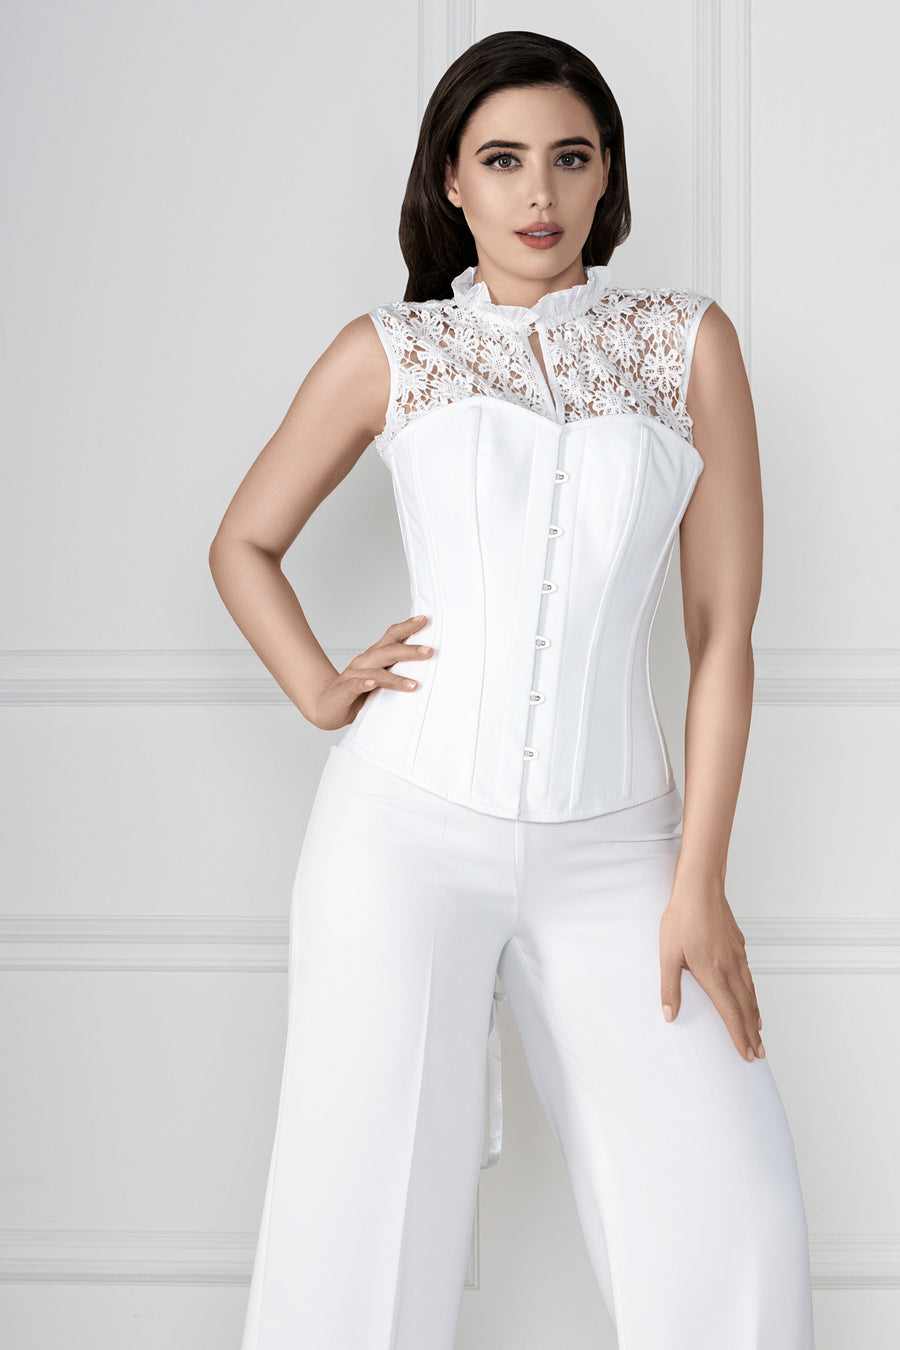 Floral Embroidered White Corset Top